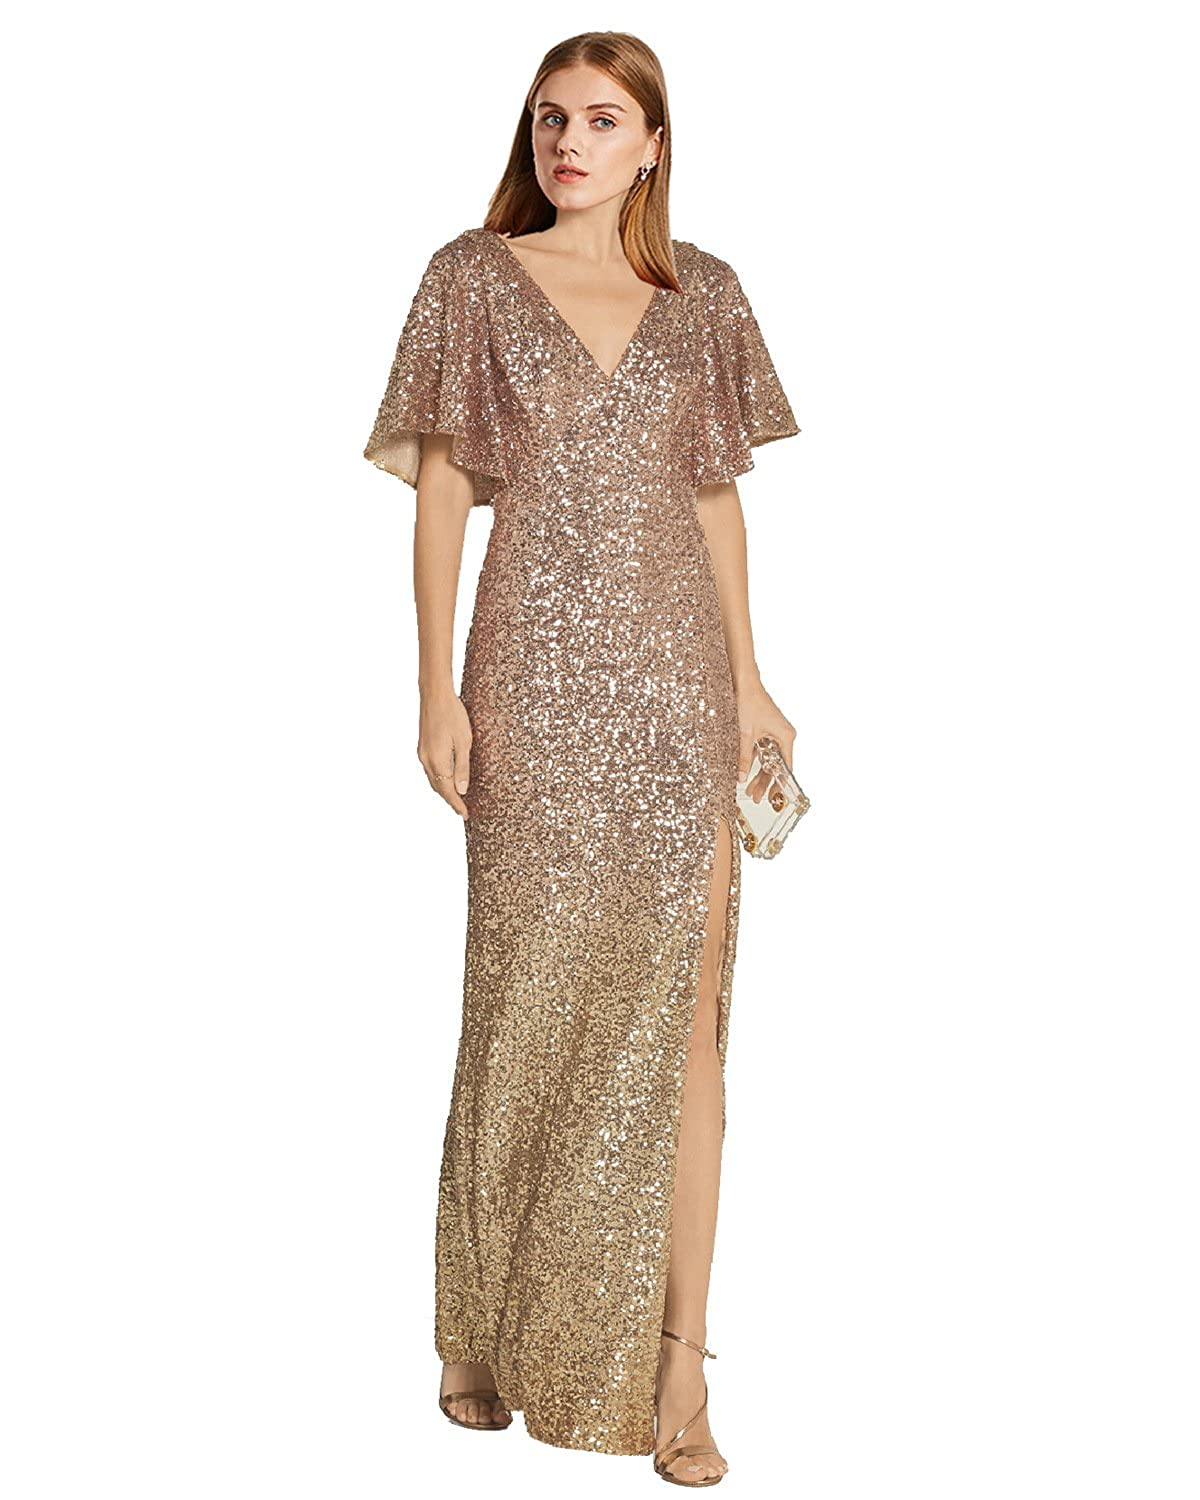 Lily Wedding Womens V-Neck Sequin Prom Dresses 2019 Long Slit Mermaid  Evening Formal Gown GD16 Champagne Plus Size 20